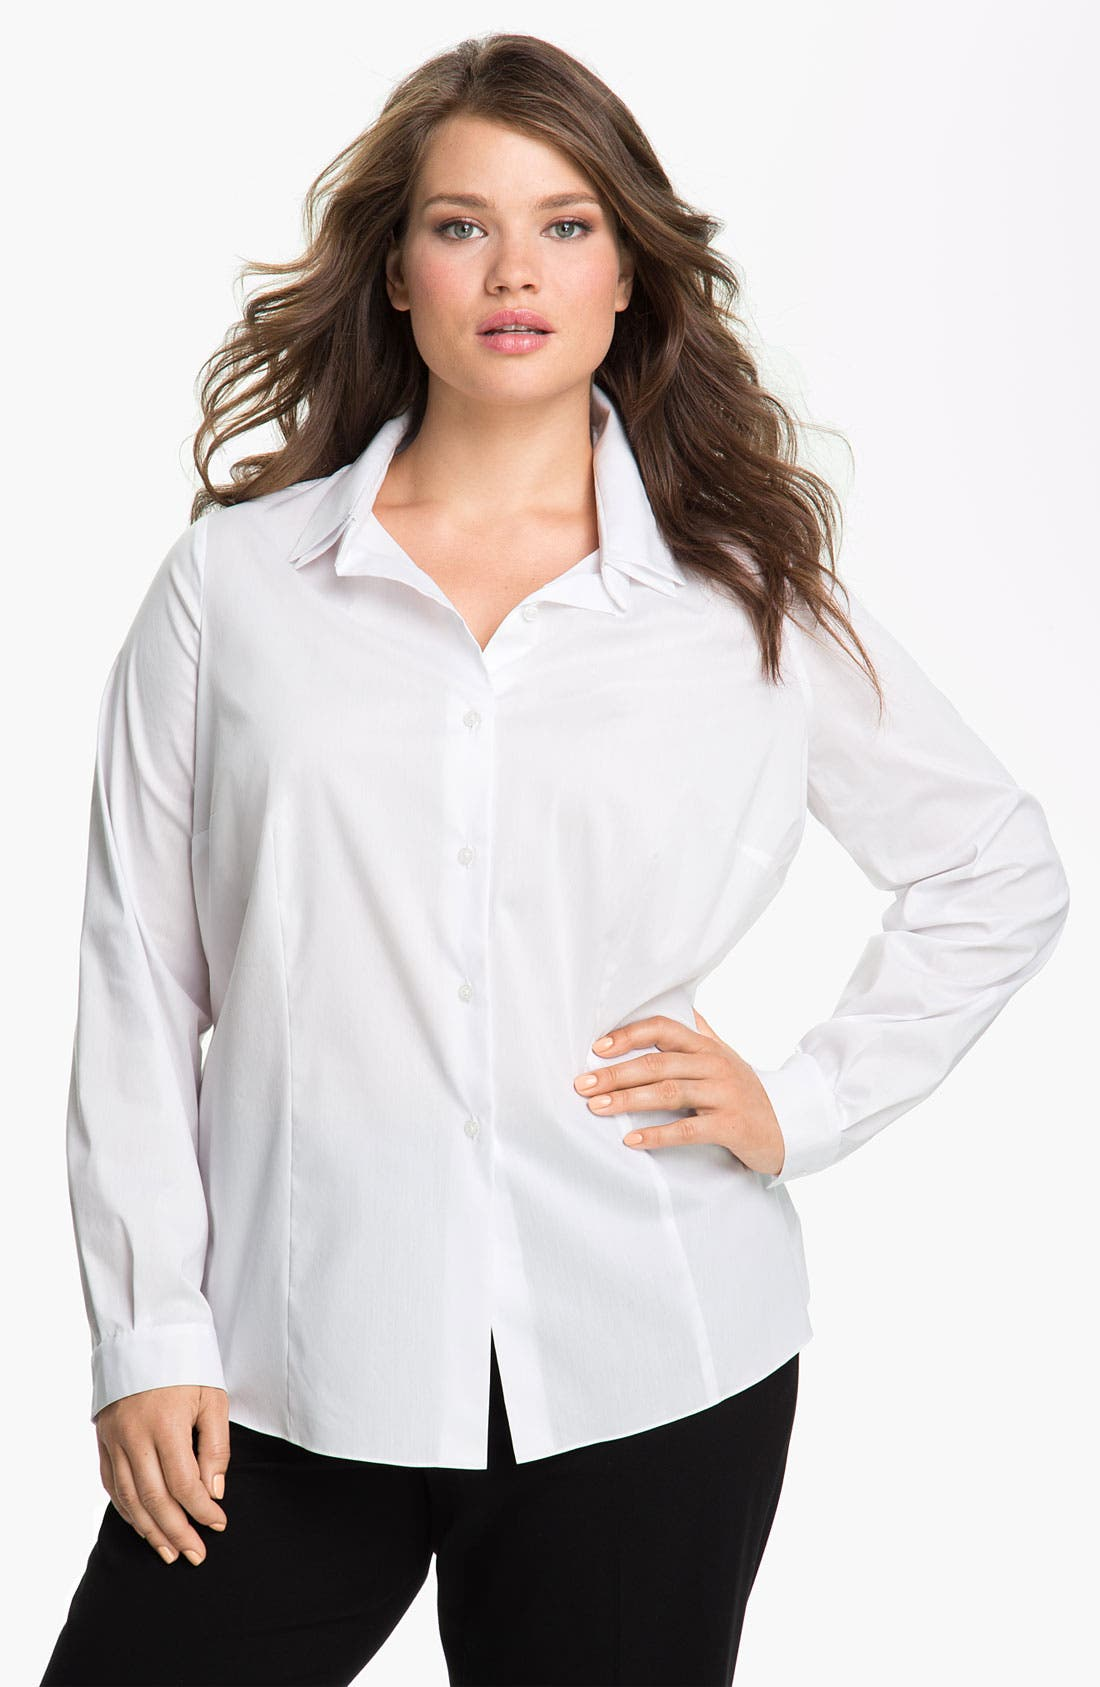 Alternate Image 1 Selected - Tahari Woman 'Jaden' Shirt (Plus)